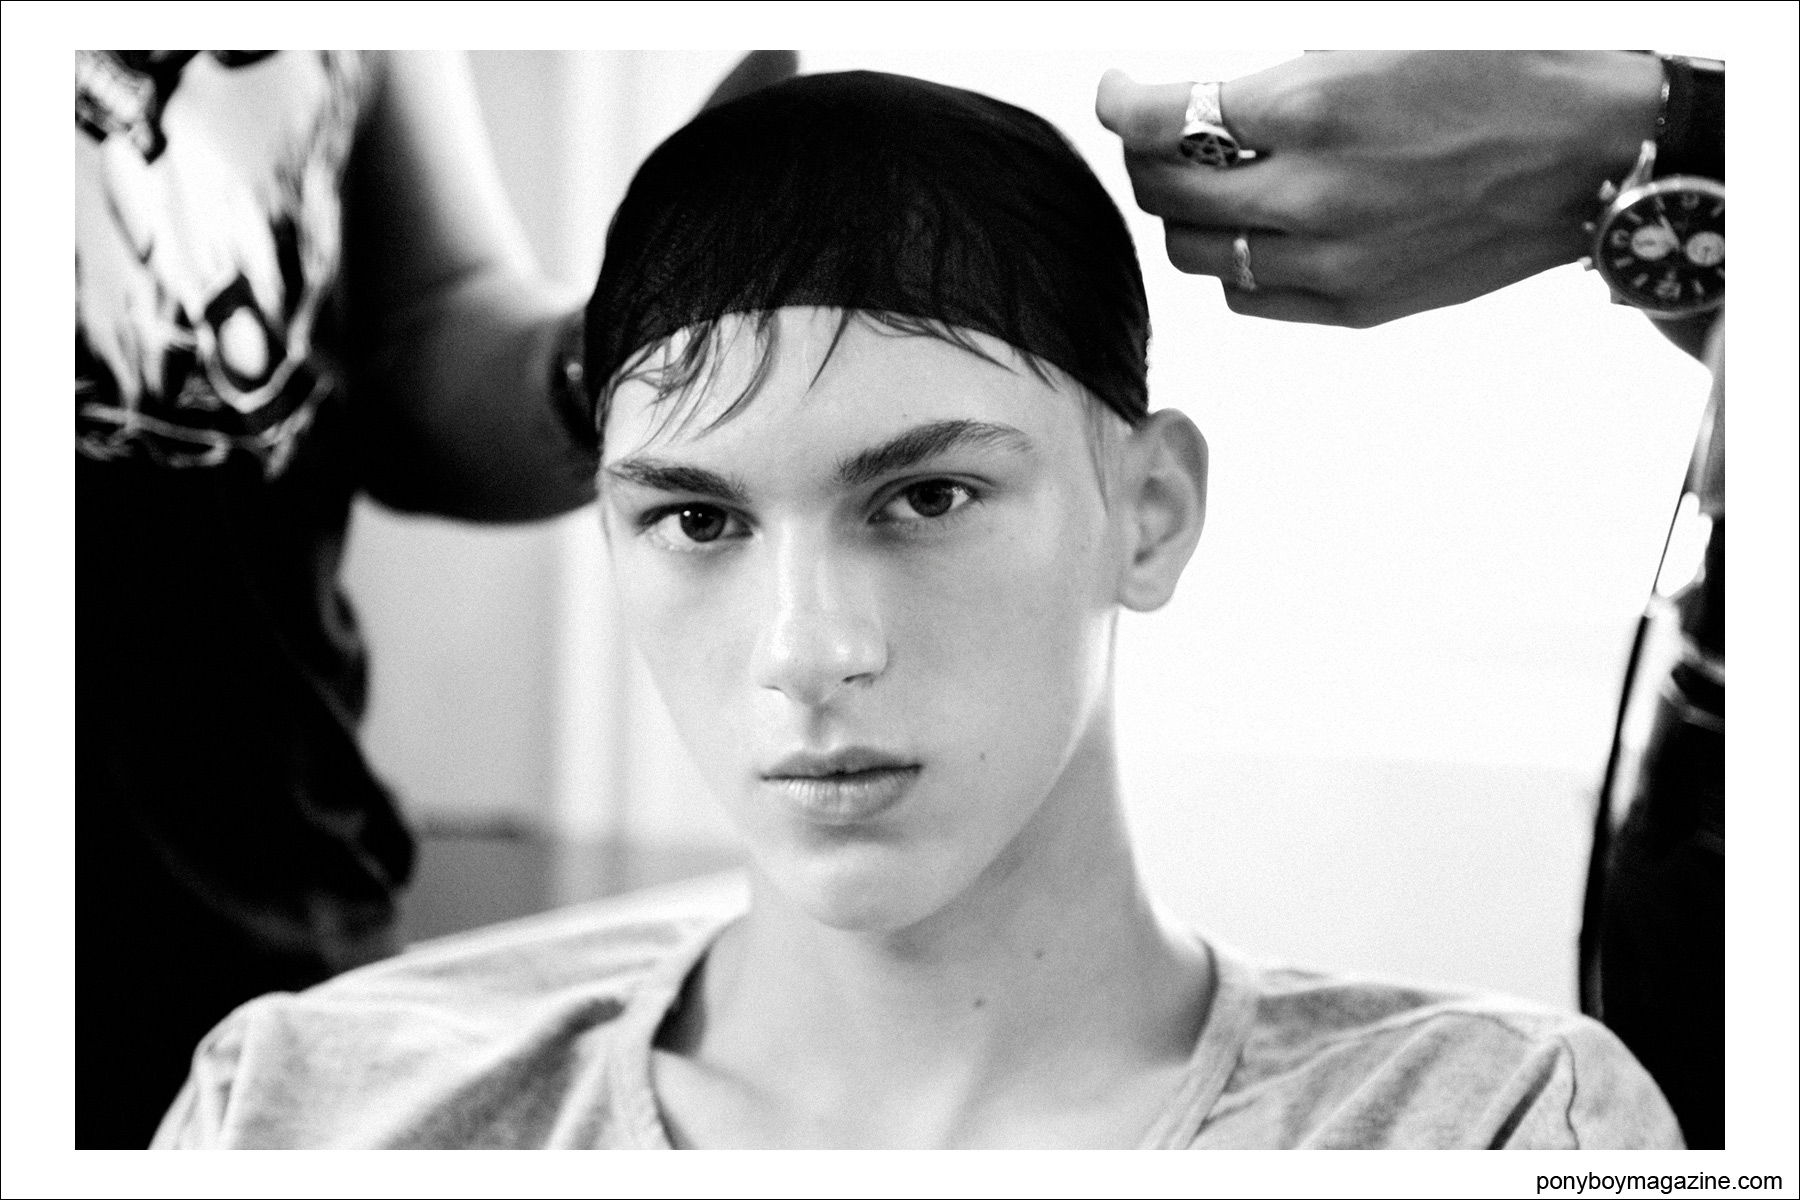 AS Management male model Dominik Sadoch photographed backstage at Tim Coppens S/S15. Photo by Alexander Thompson for Ponyboy Magazine.